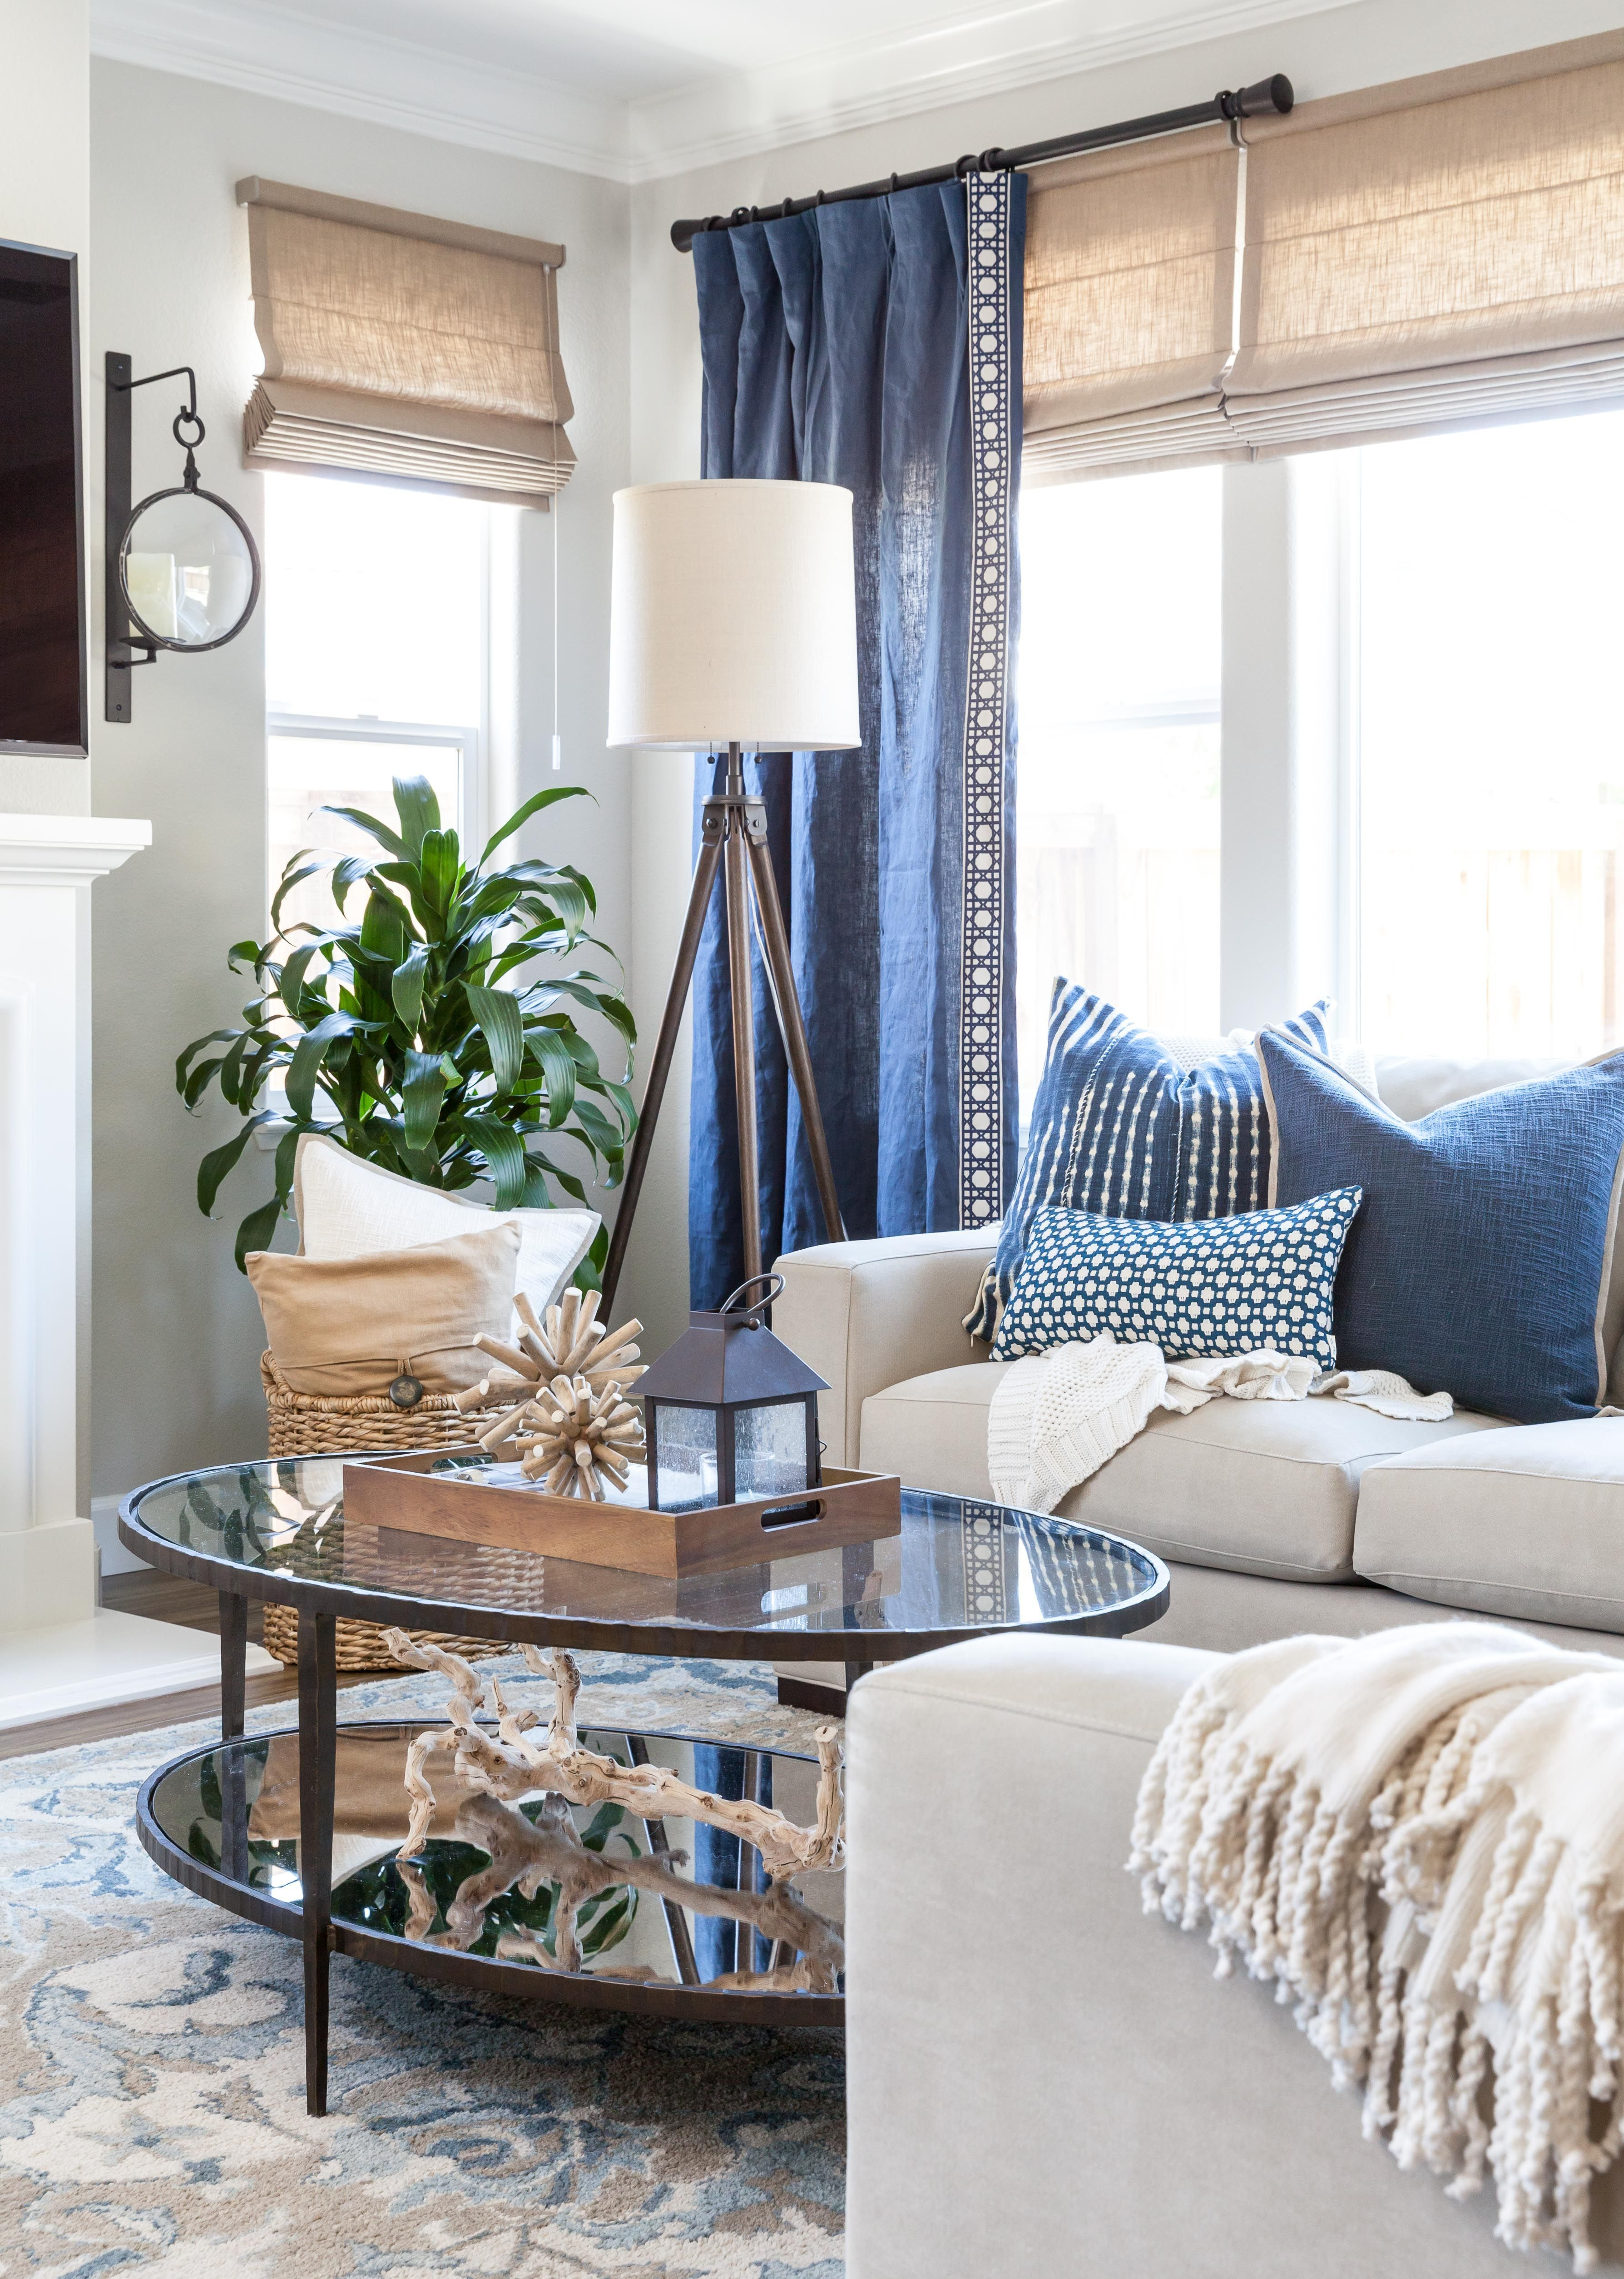 Window treatment ideas for a sunroom   fascinating small lampshade ideas brighten up your space  my